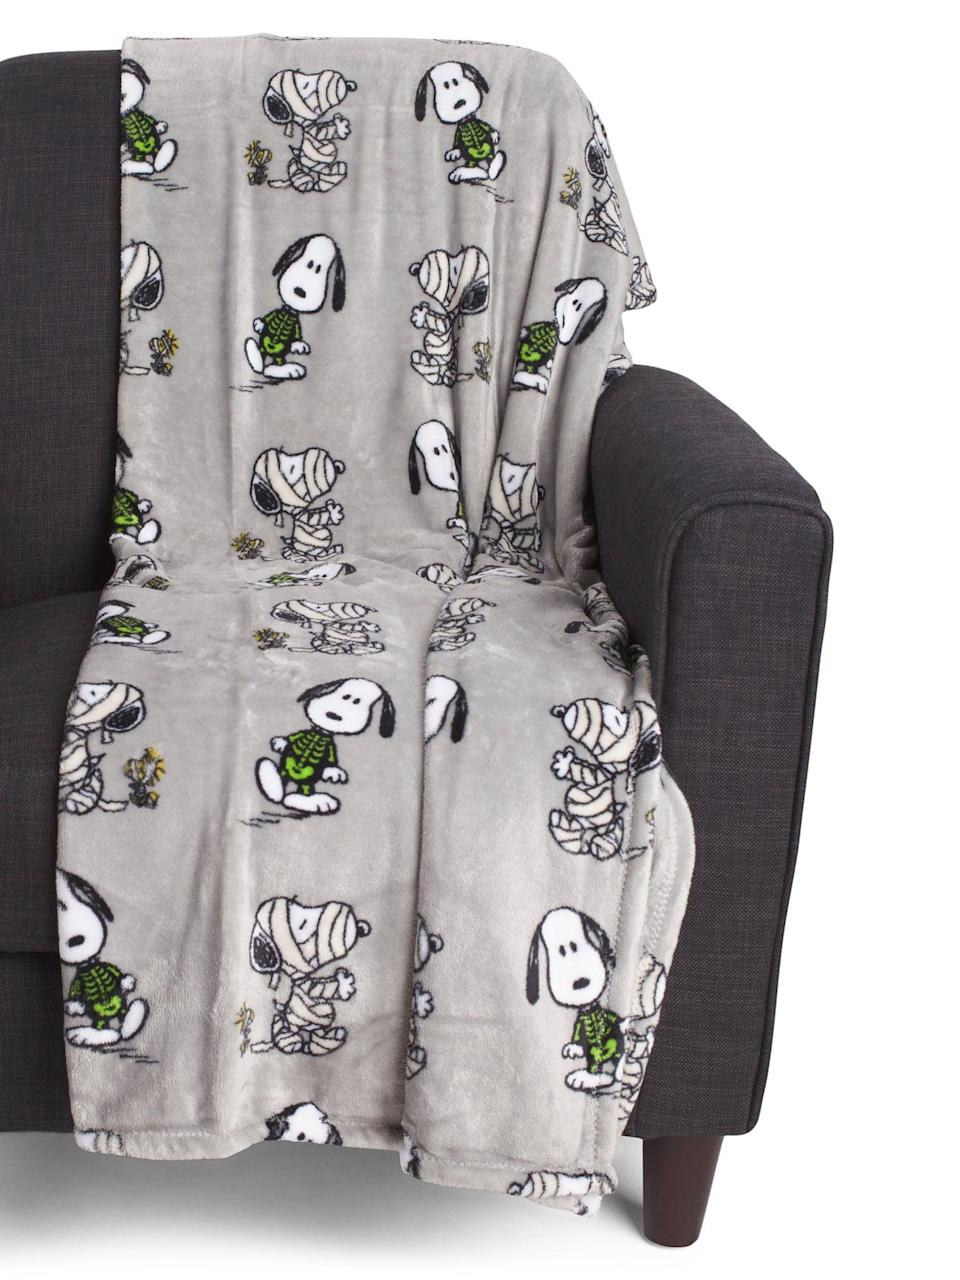 <p>Snoopy from <strong>Peanuts</strong> is dressed as a mummy on the <span>Mummy Plush Throw</span> ($17).</p>